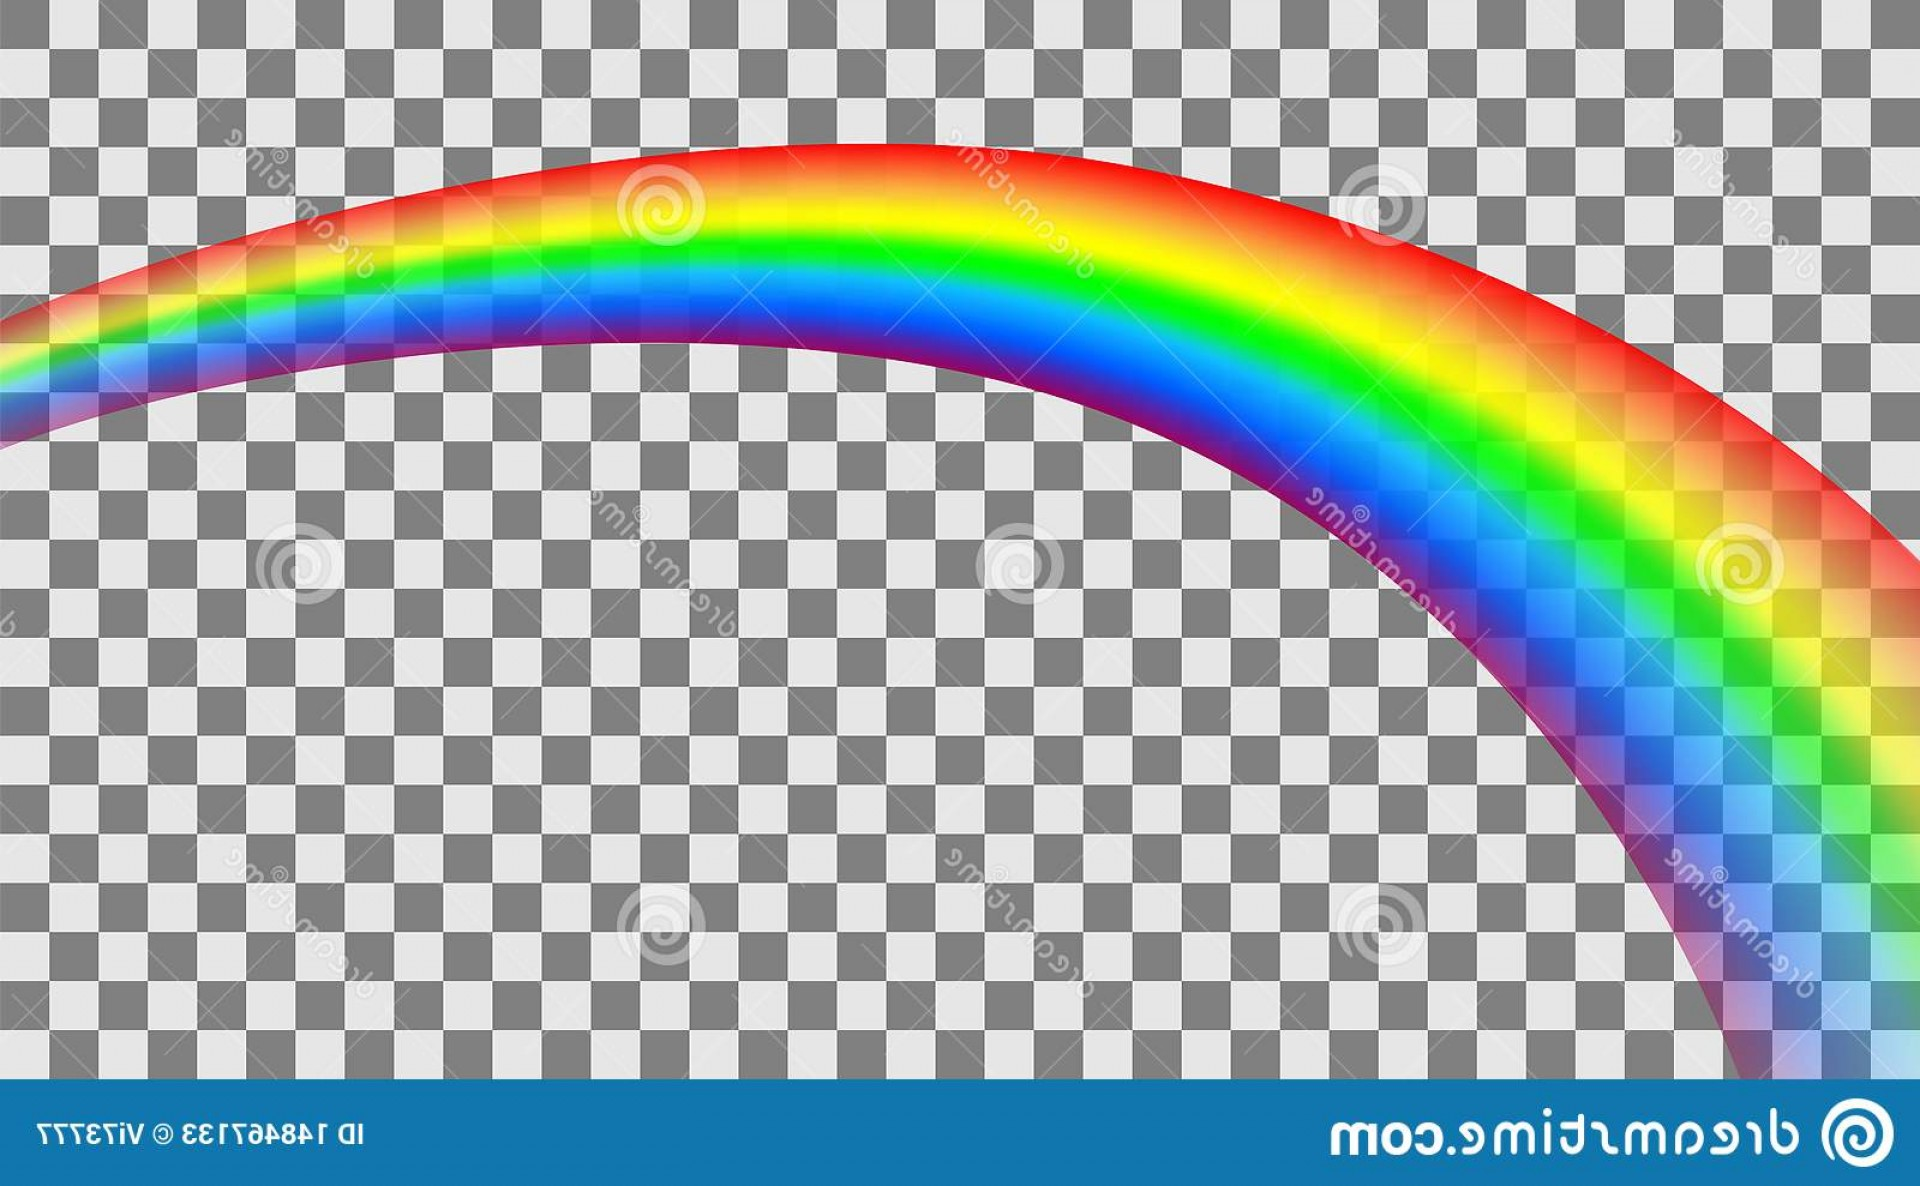 Perspective Vector: Transparent Colorful Rainbow Perspective Vector Illustration Image